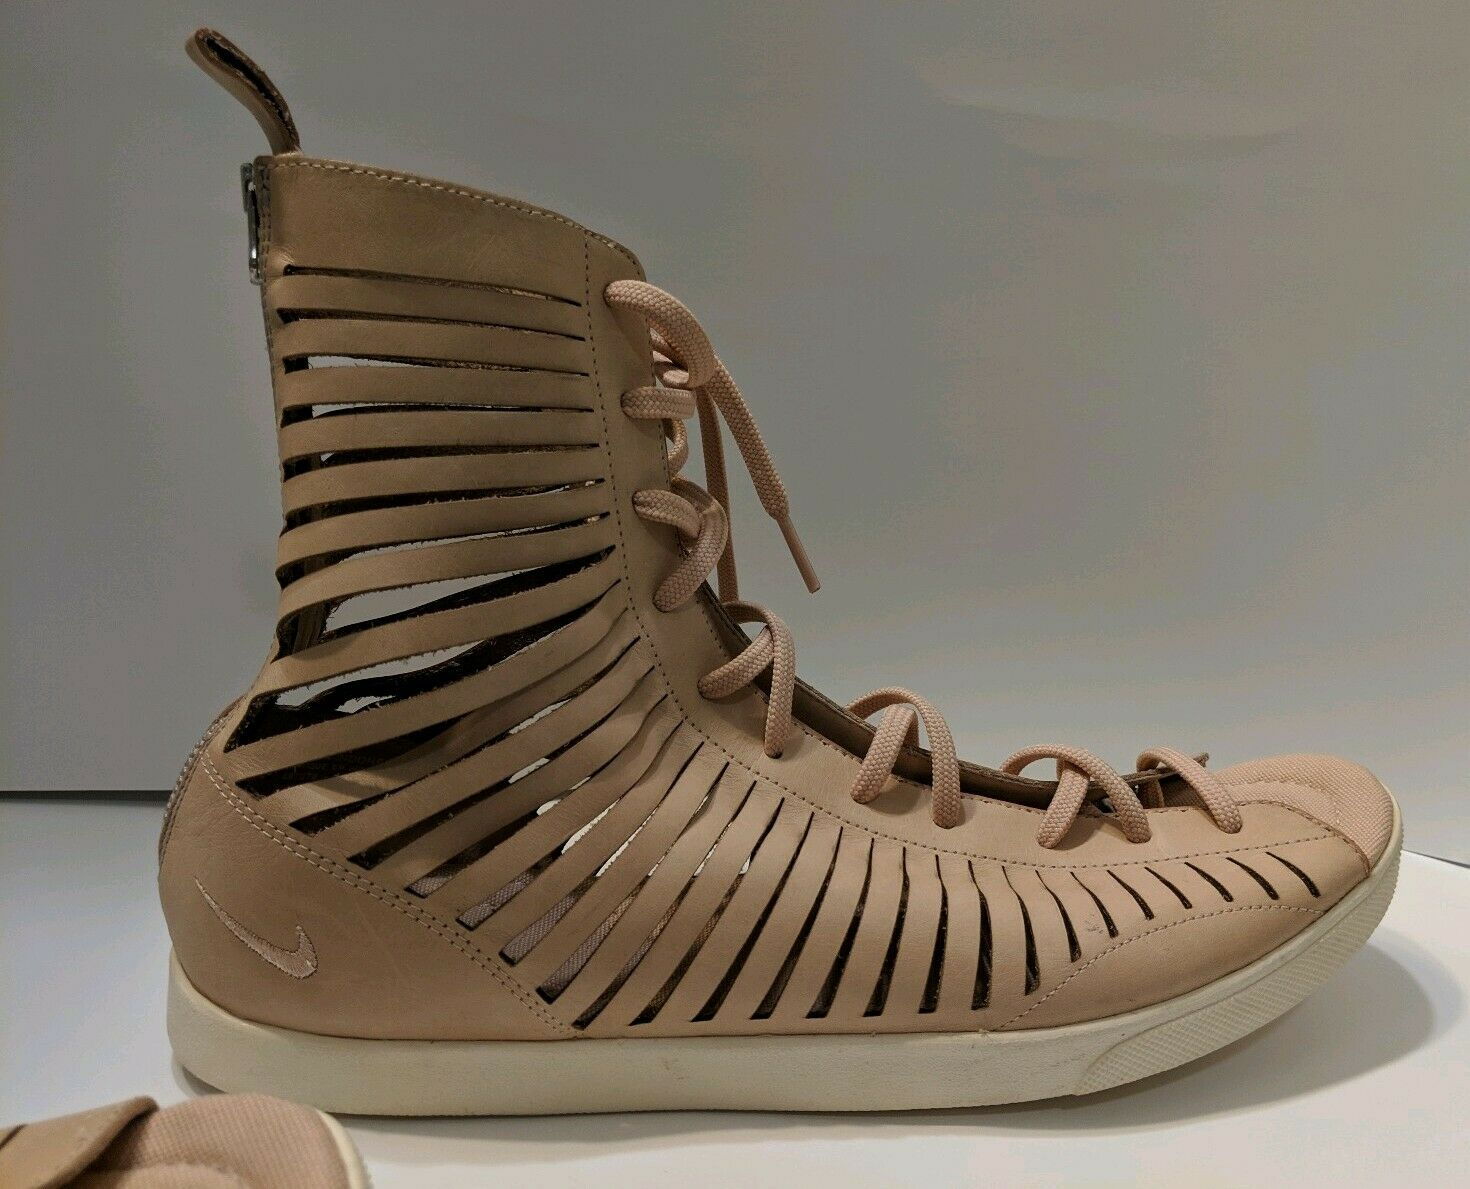 Nike Racquette Slice Gladiator shoes Womens SZ 12 Beige Nude Lace Up Back Zip